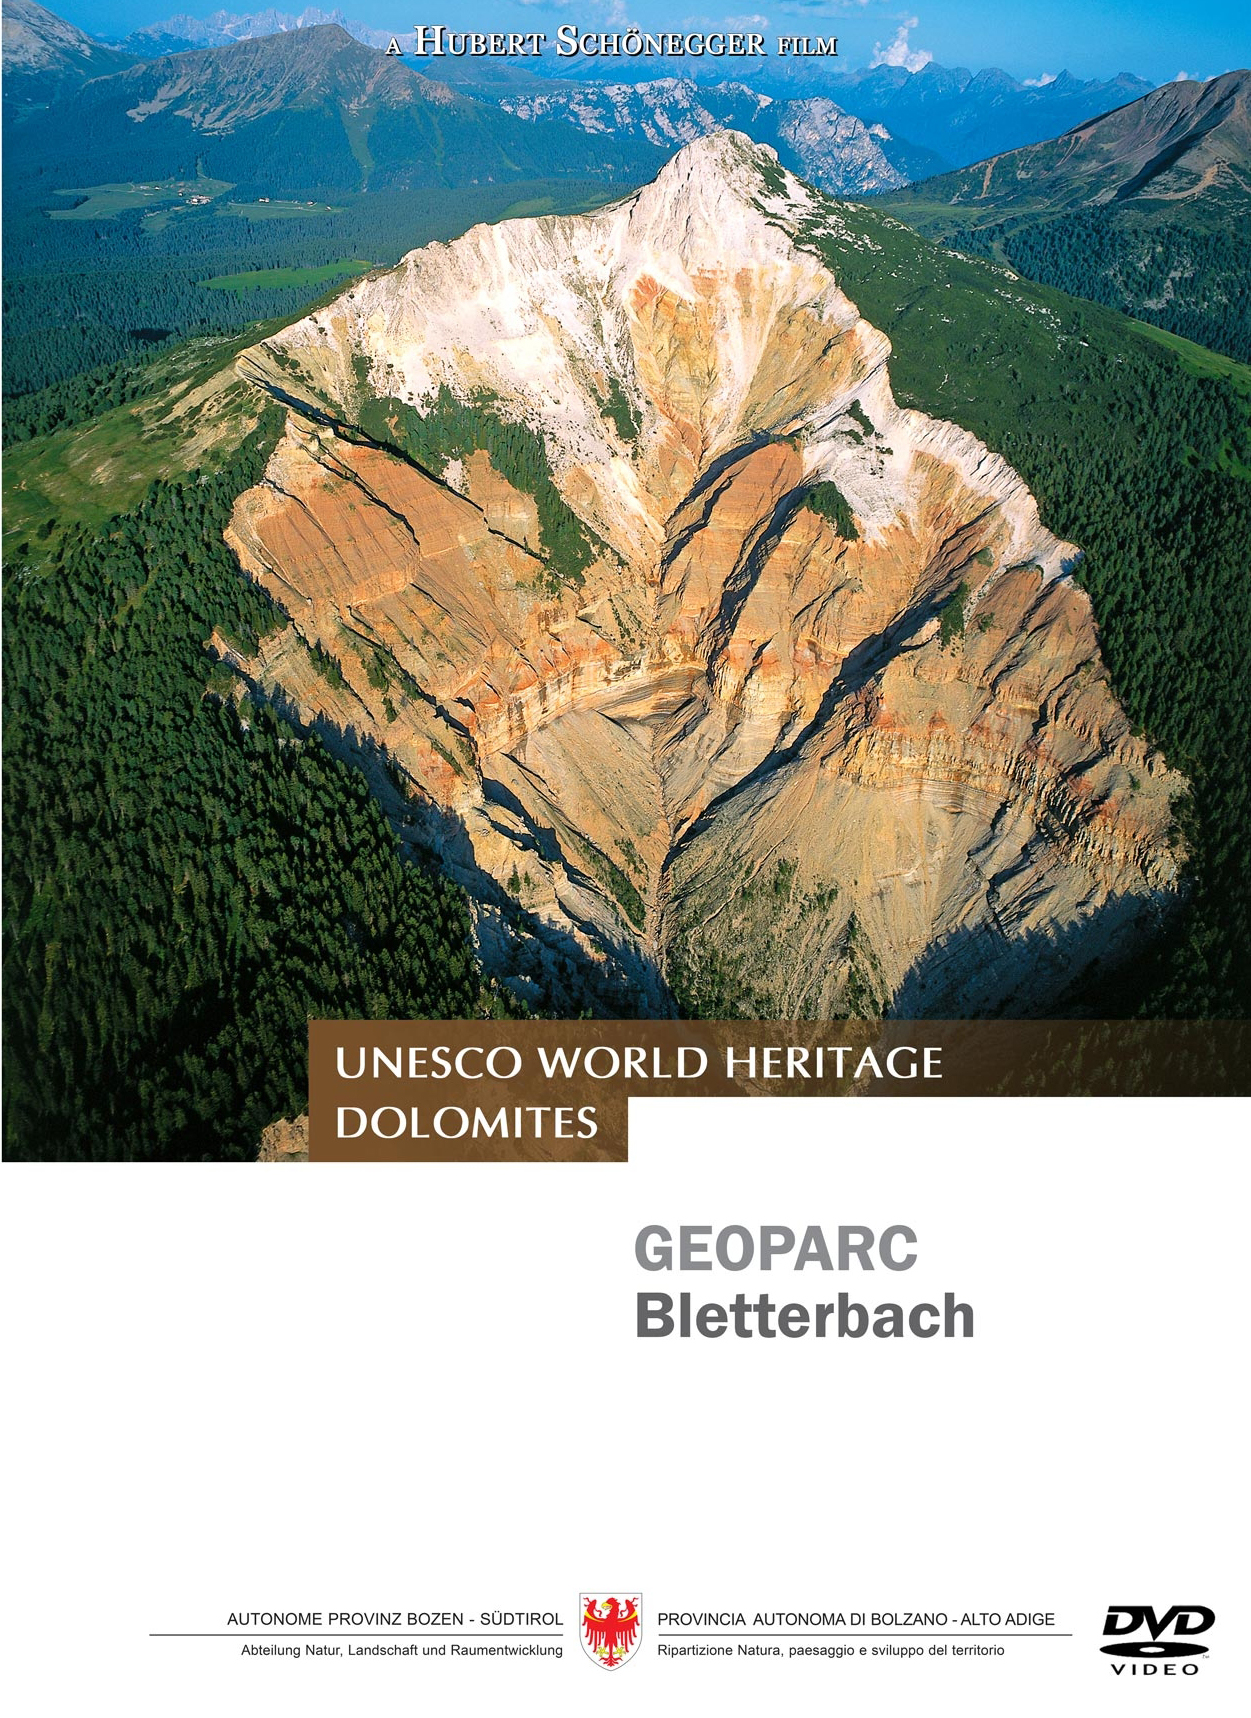 Video: «GEOPARC Bletterbach - Dolomites UNESCO World Heritage - english version»